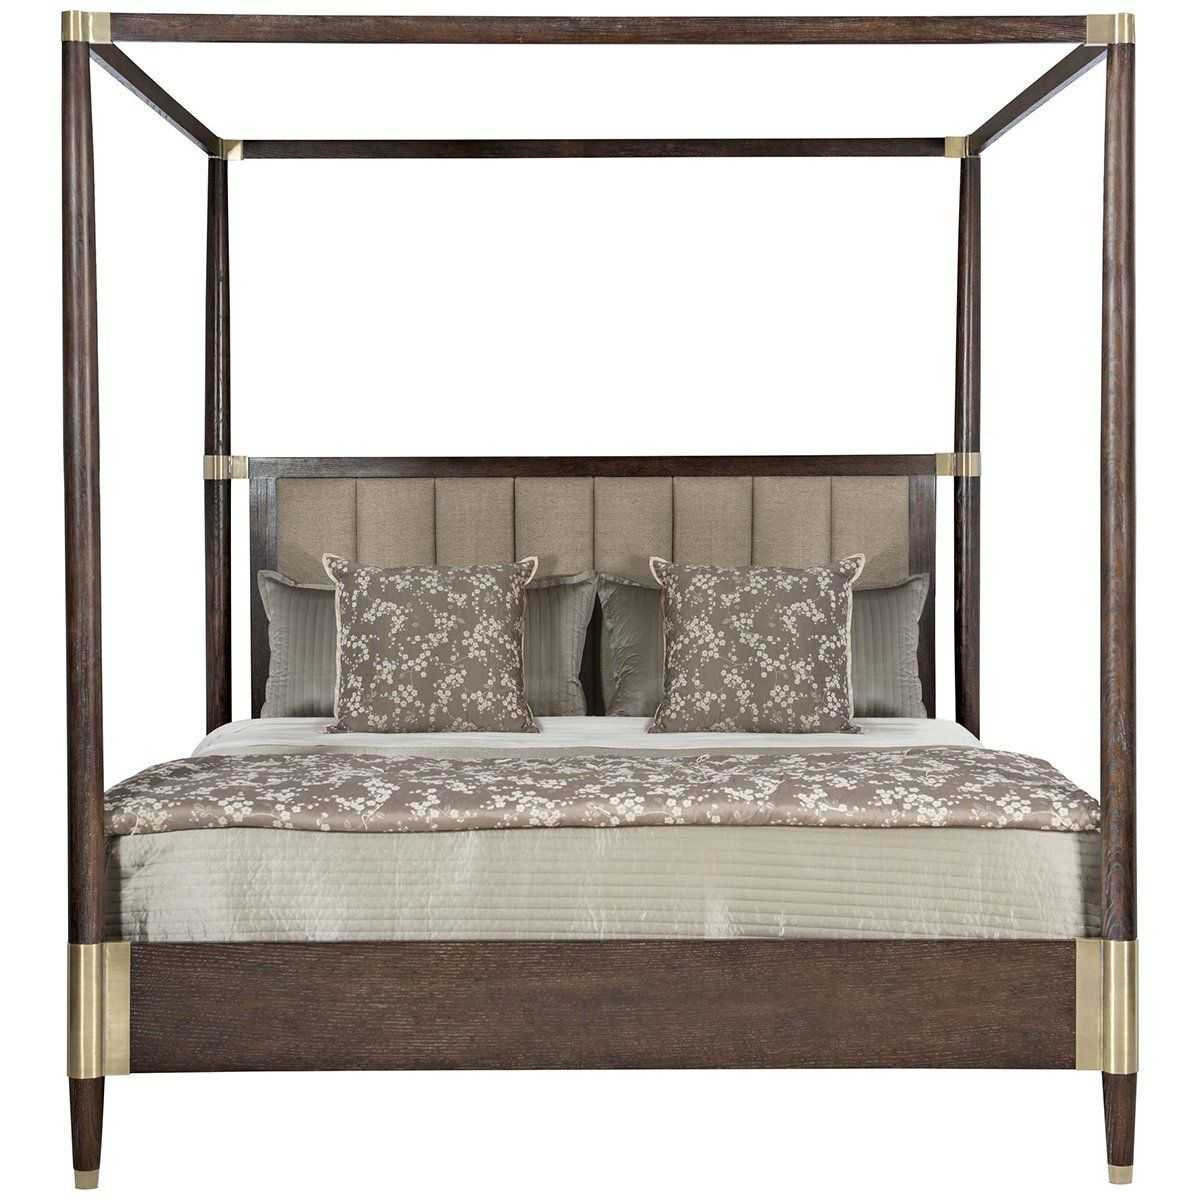 Bernhardt Clarendon Arabica Canopy Bed Wood Canopy Bed